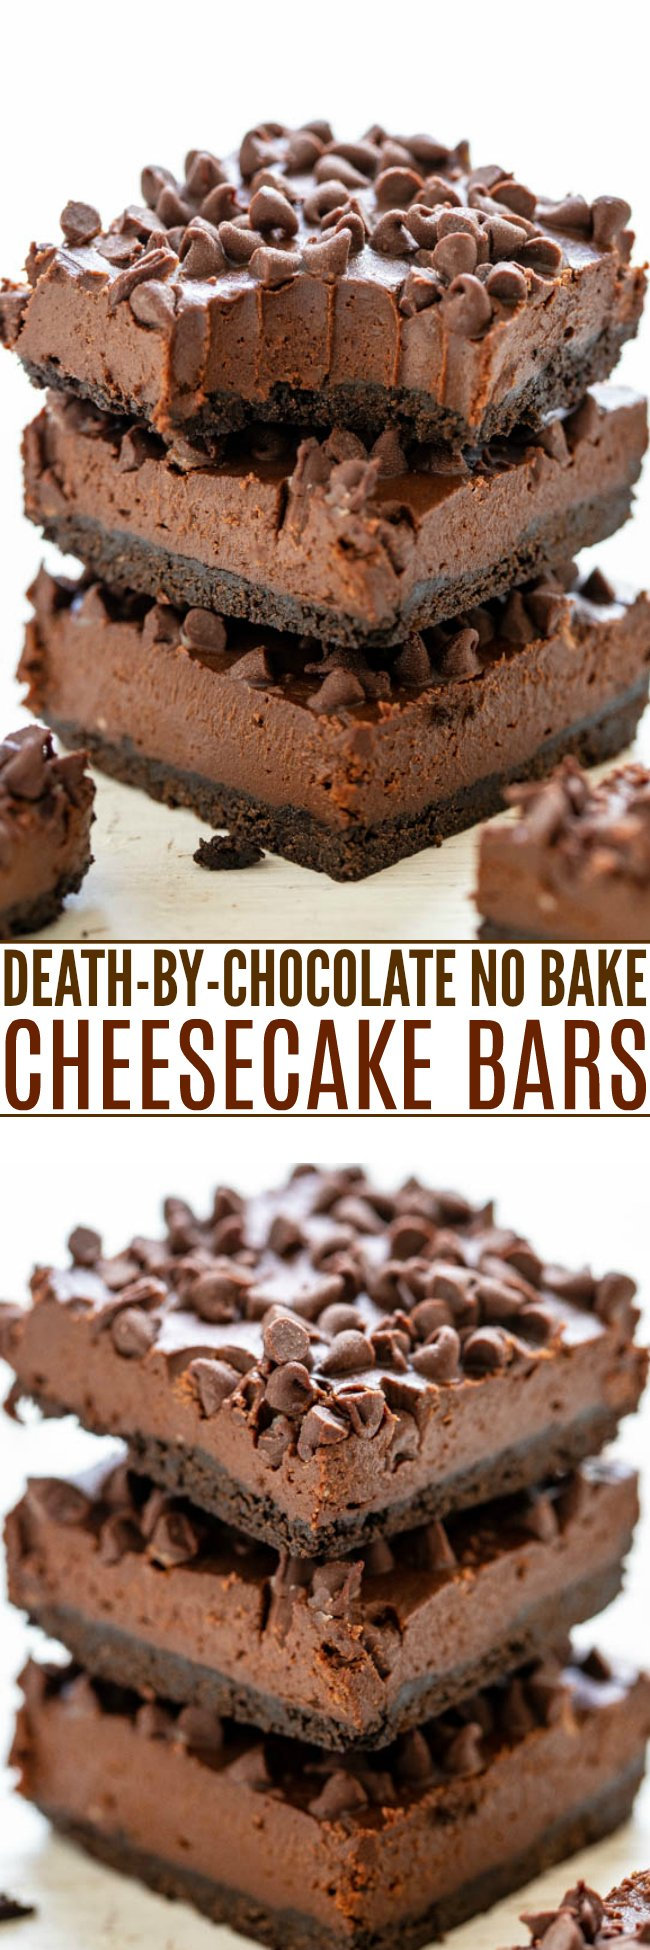 Death-By-Chocolate No Bake Cheesecake Bars - Only for serious chocoholics because they're rich, creamy, decadent, and loaded with chocolate!! NO-BAKE and an easy MAKE-AHEAD dessert!!